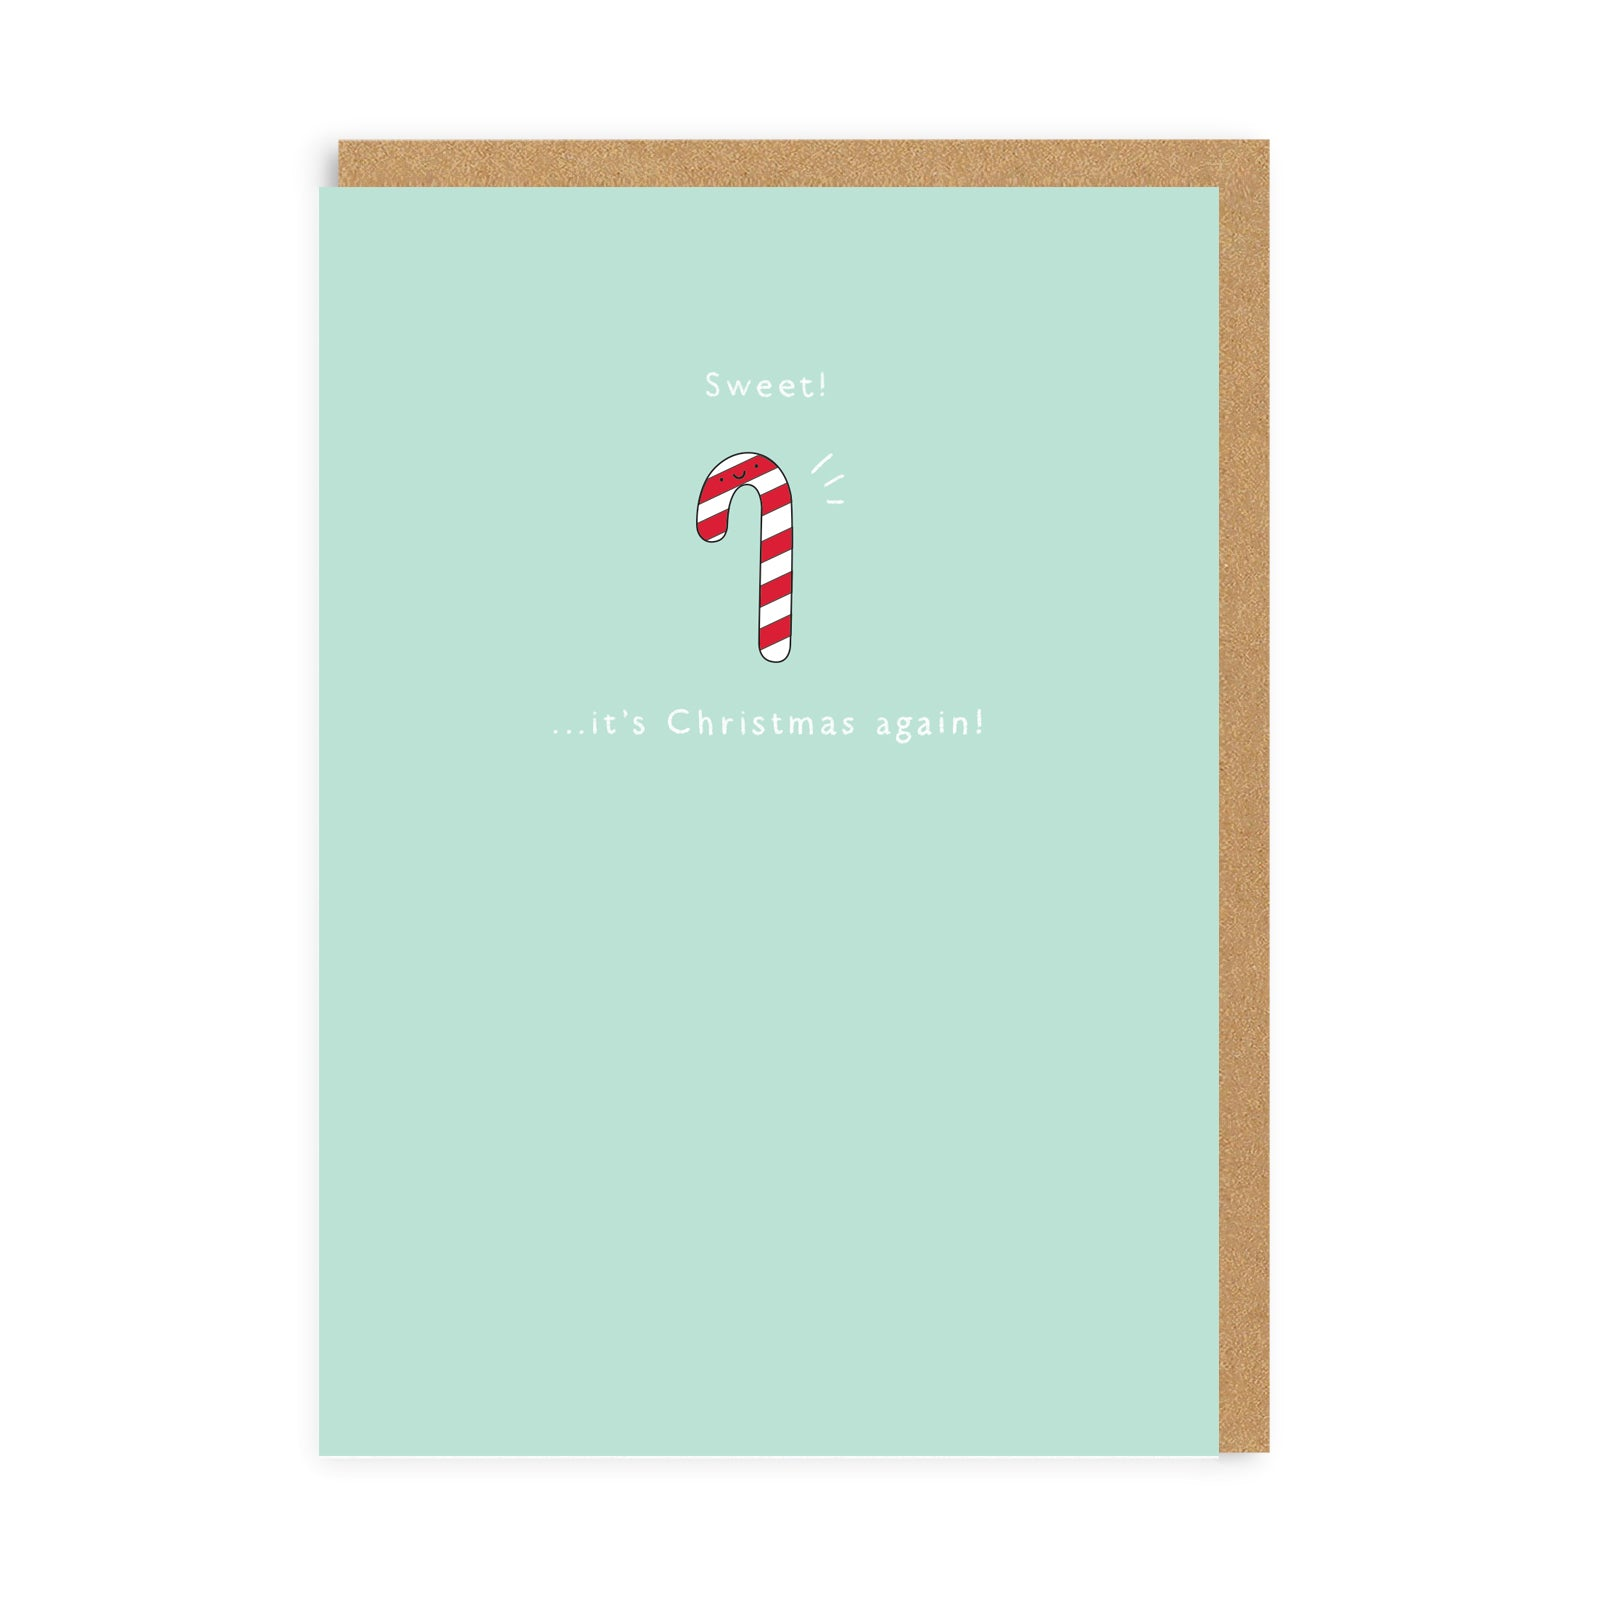 Sweet, It's Christmas Again! Enamel Pin Greeting Card